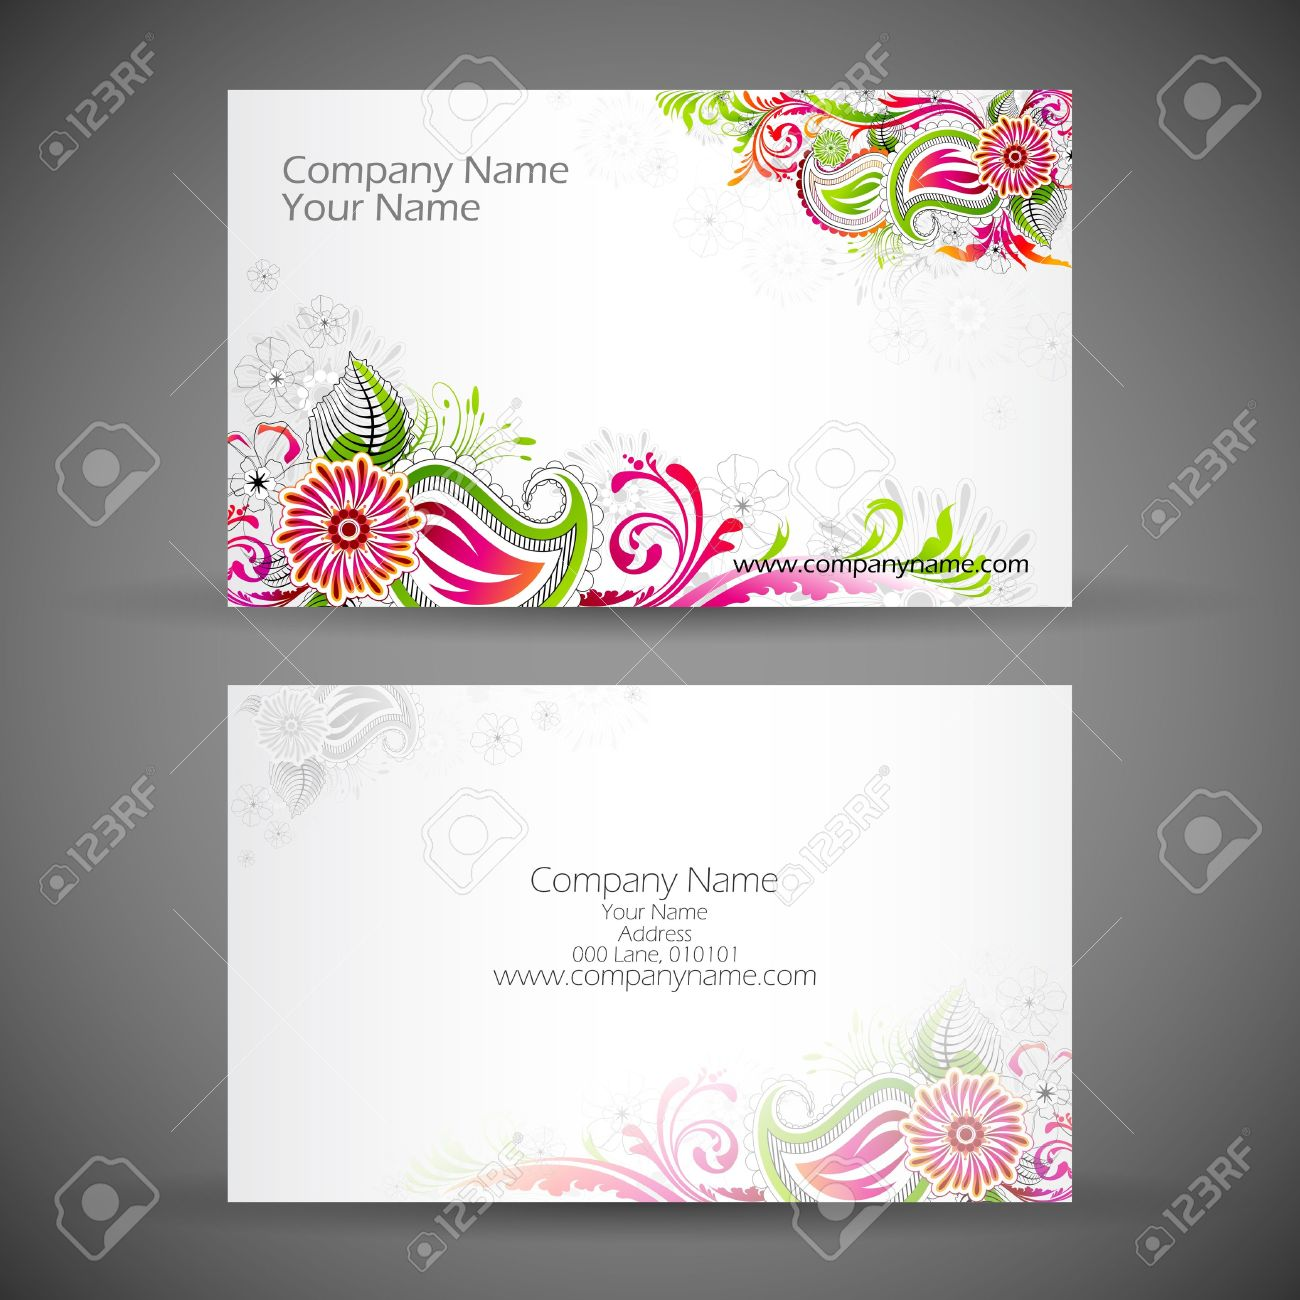 Front and back business card template word images templates front and back business card business resume marketing resume illustration of front and back of corporate magicingreecefo Images